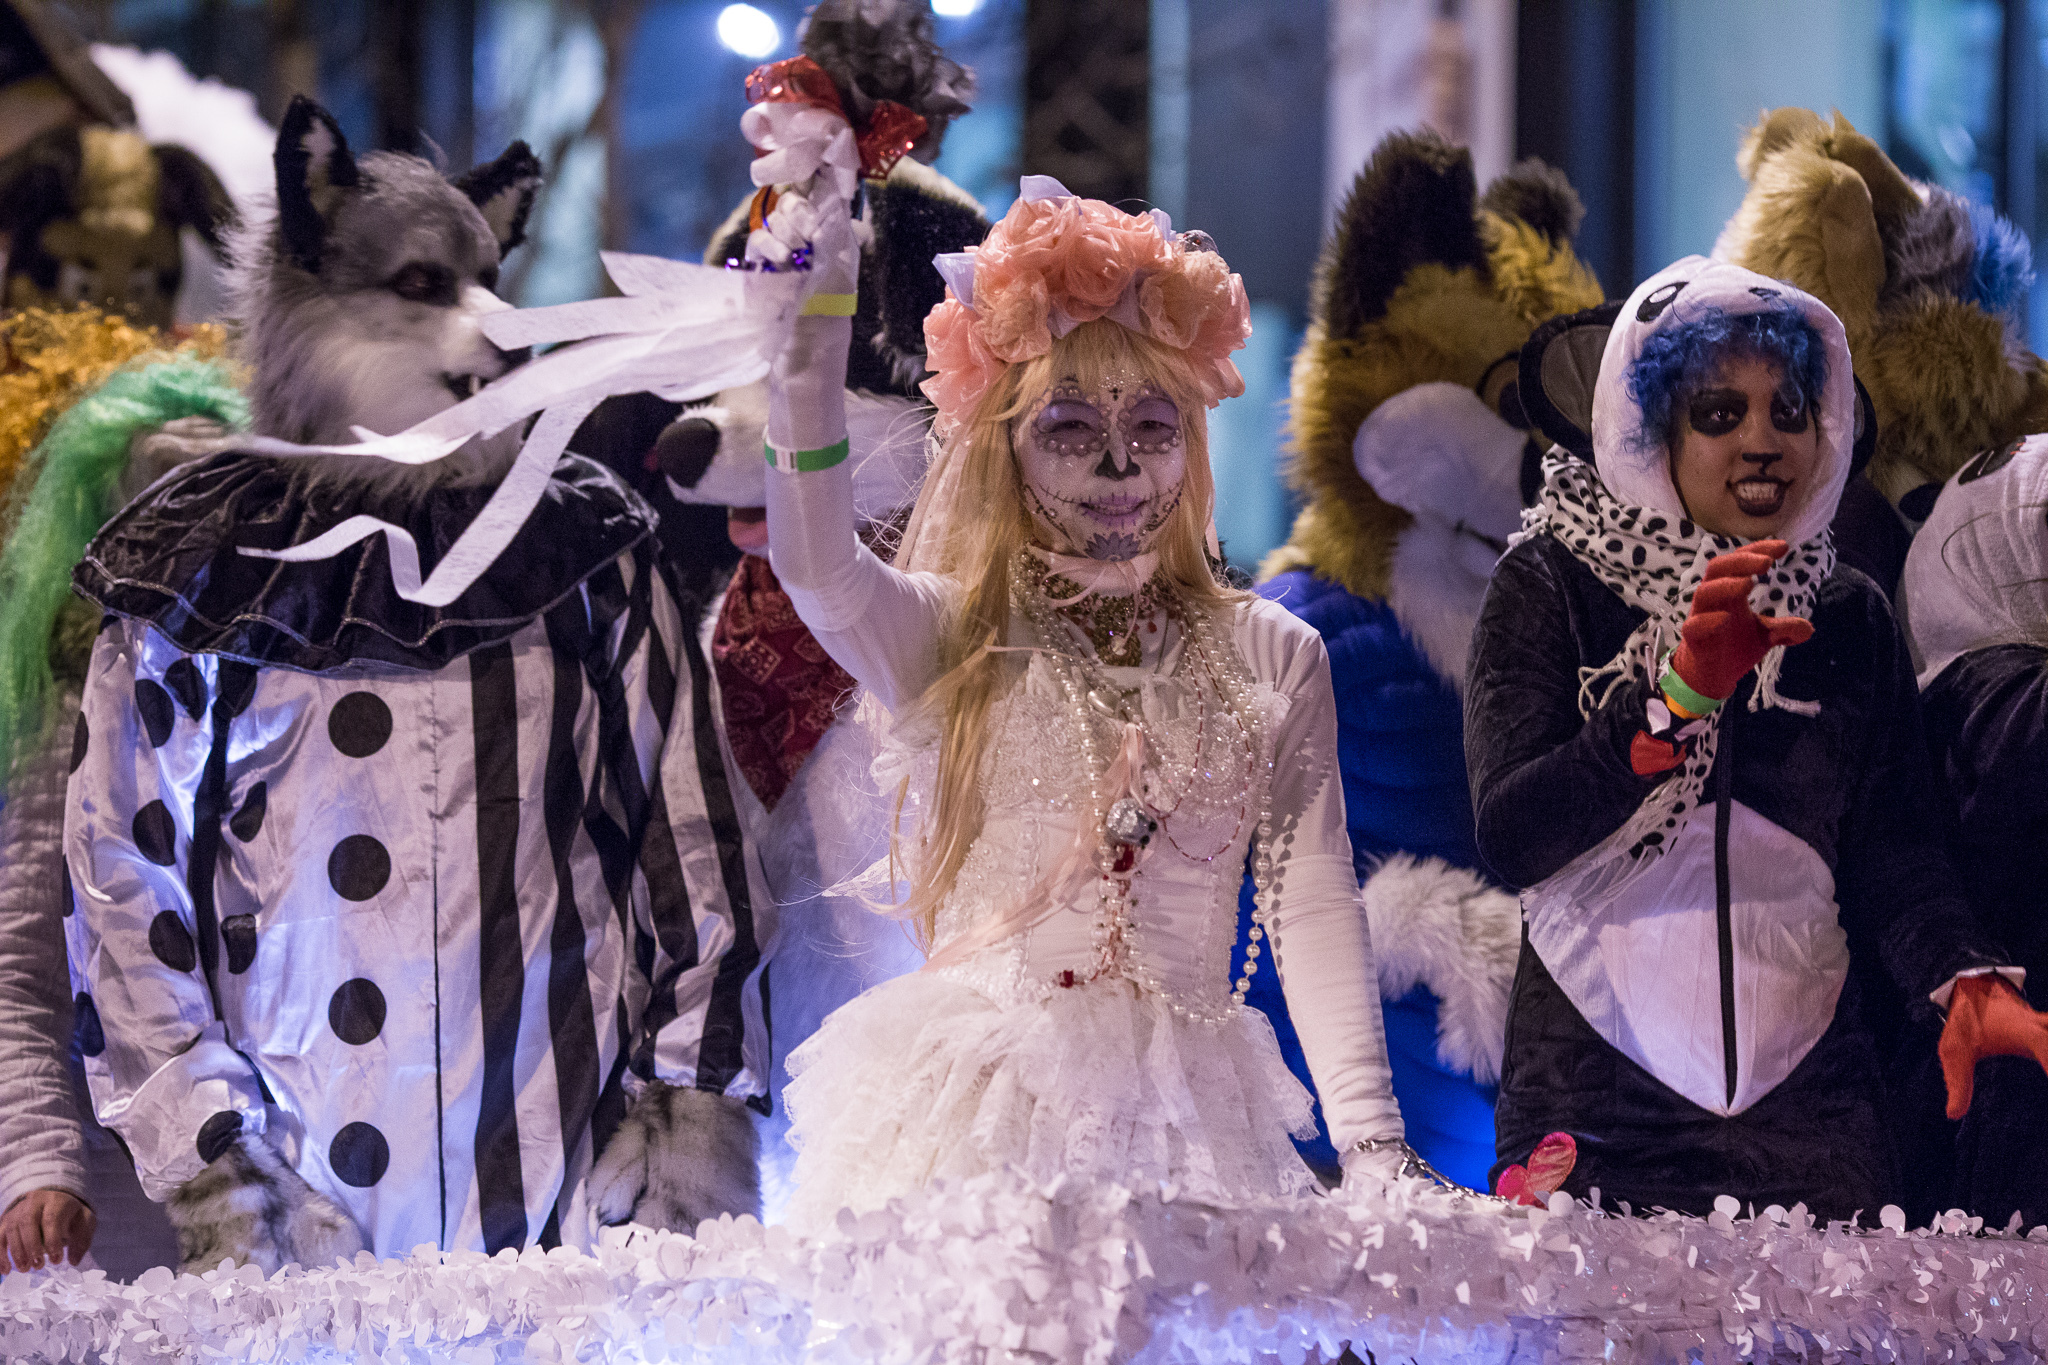 Photos from the Northalsted Halloween Parade